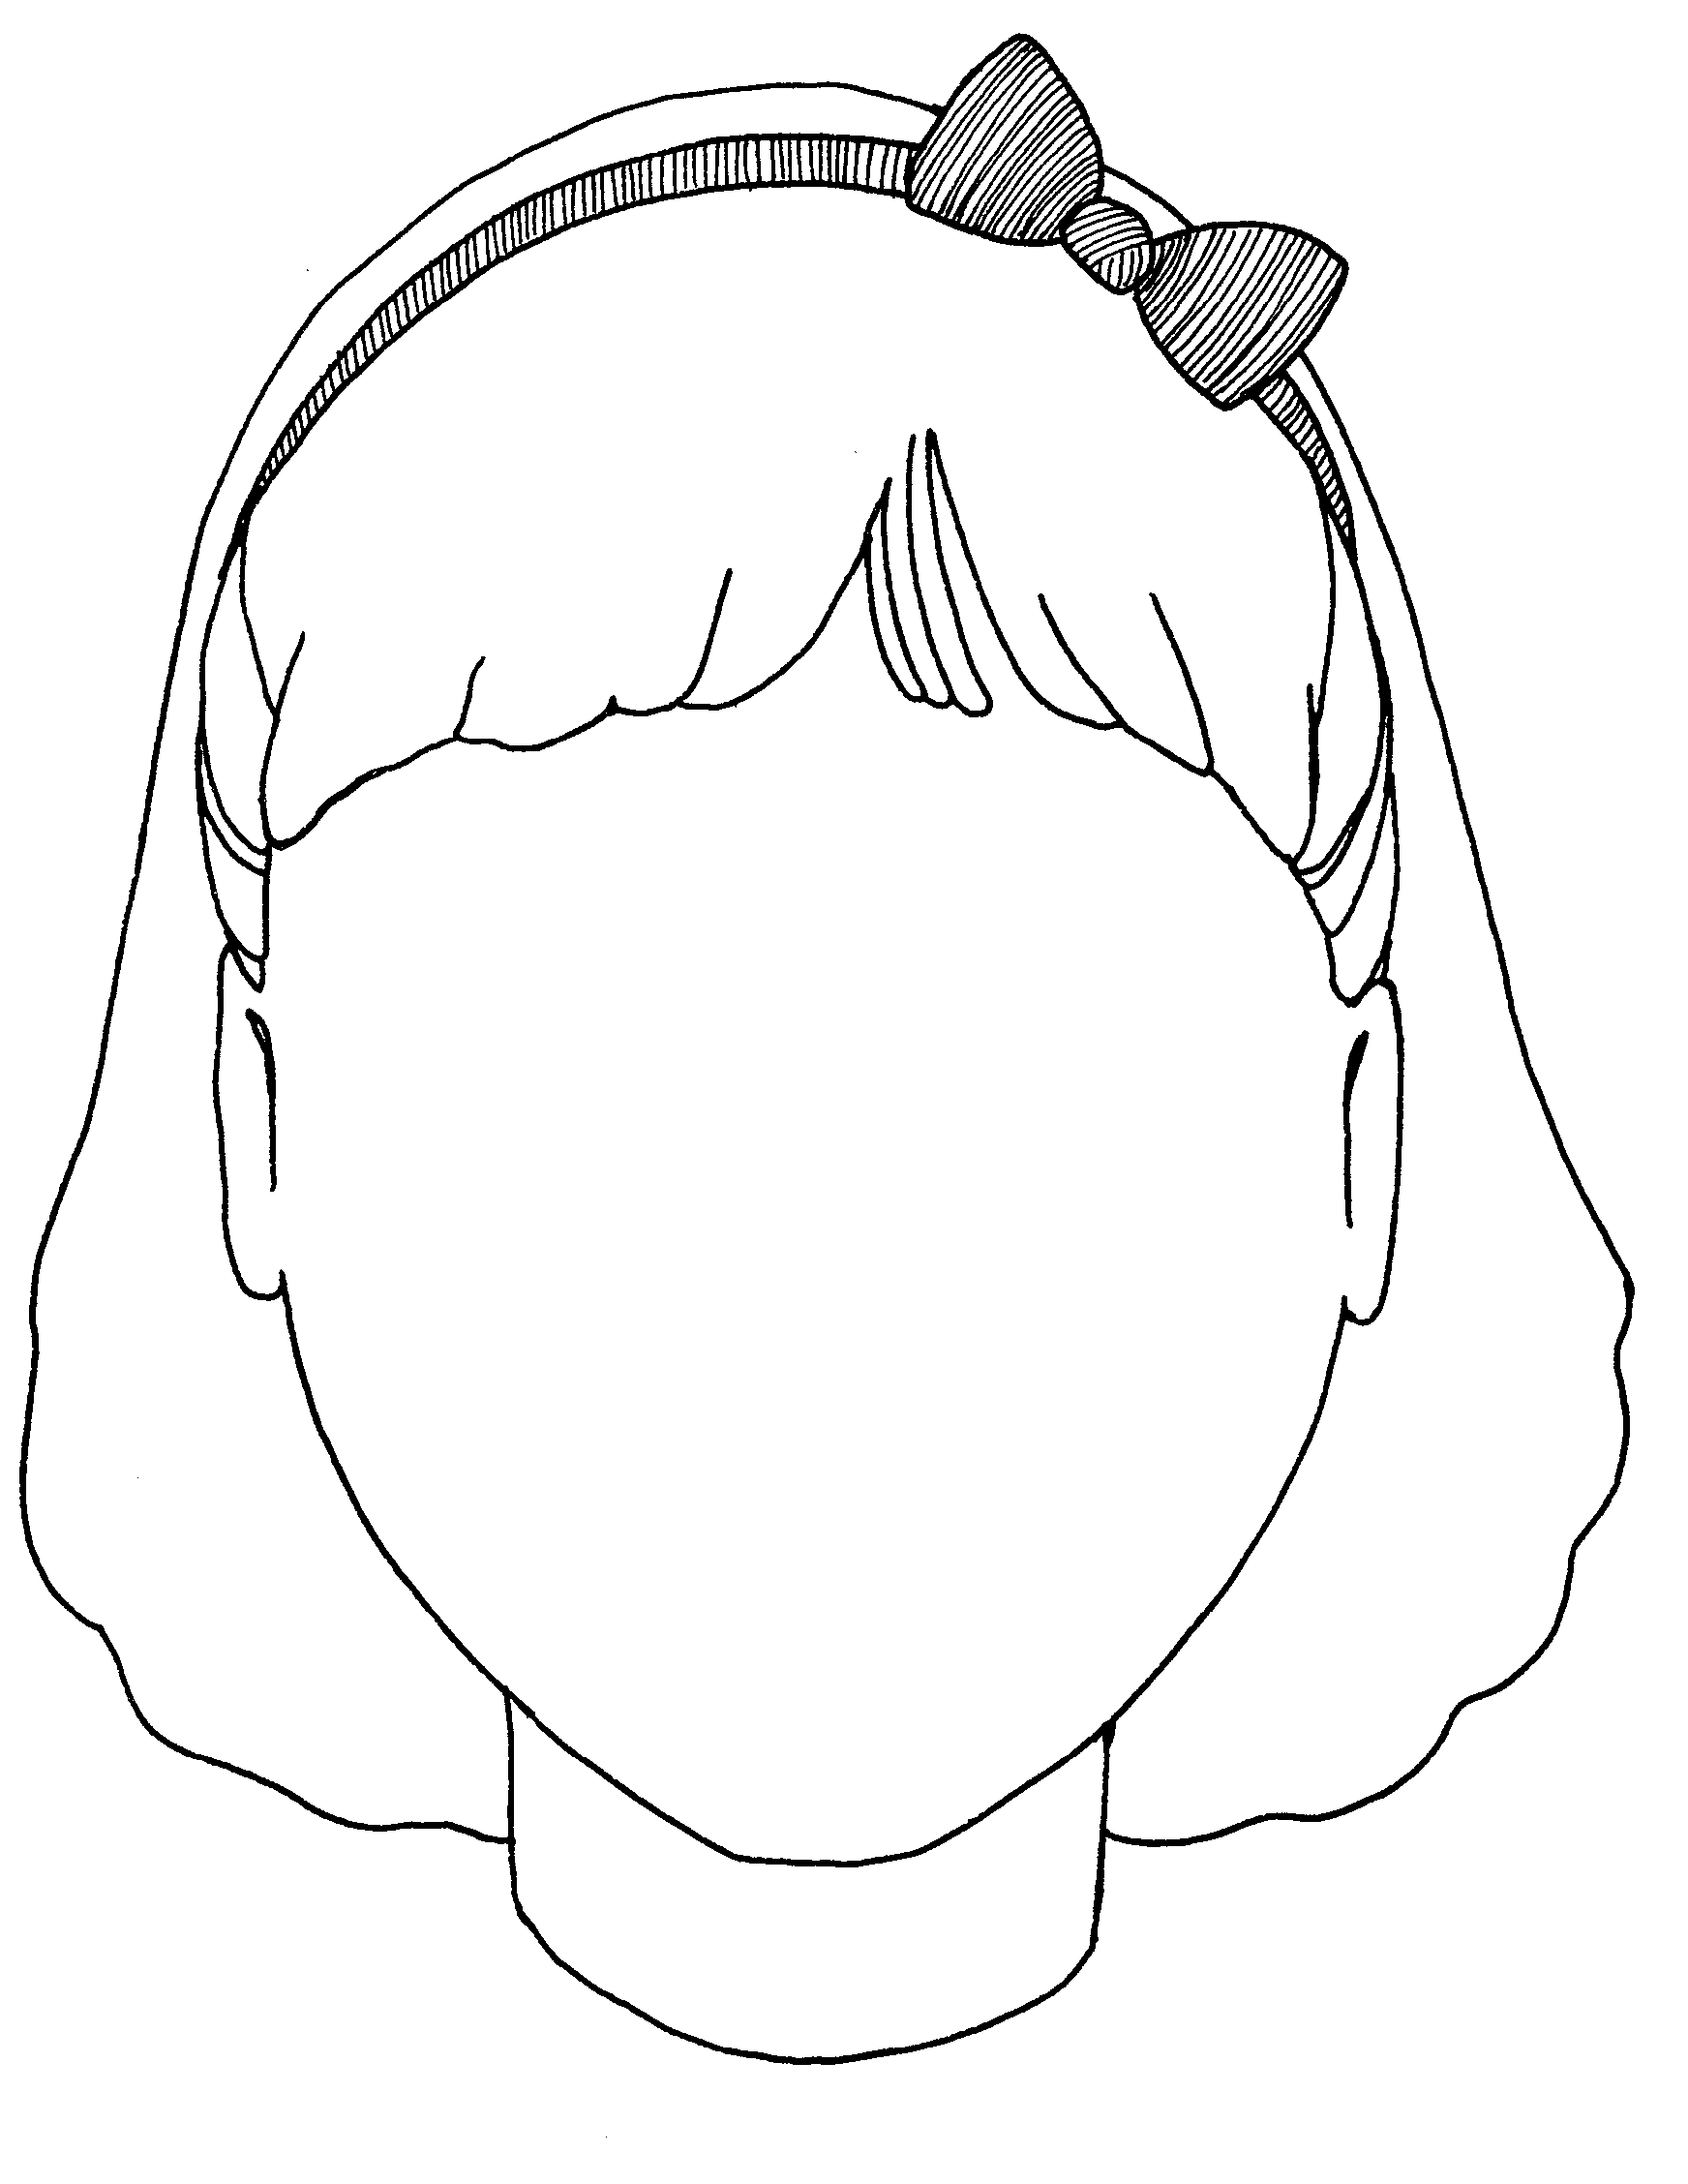 human head coloring pages - photo#8